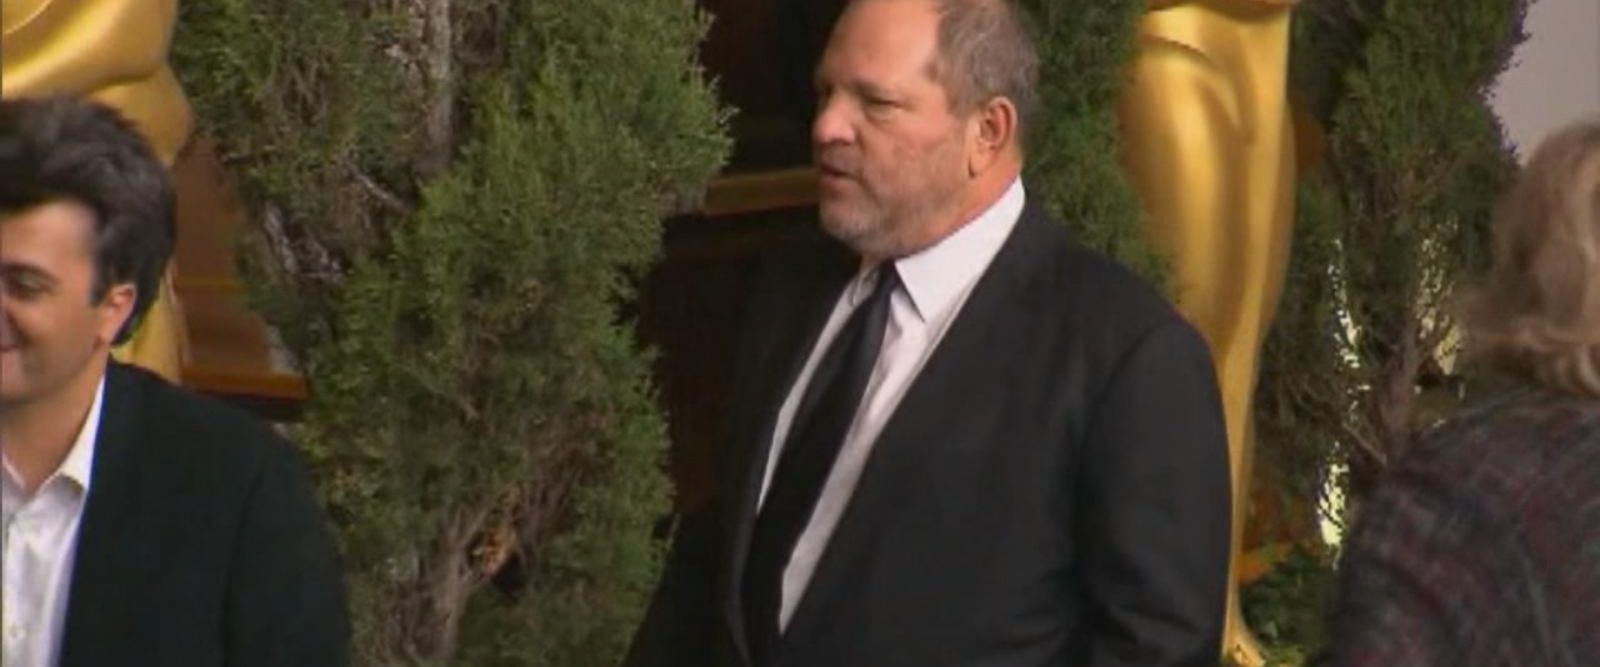 Federal prosecutors in Manhattan are now investigating allegations of sexual abuse against disgraced film producer Harvey Weinstein, a source familiar with the probe confirmed to ABC News.